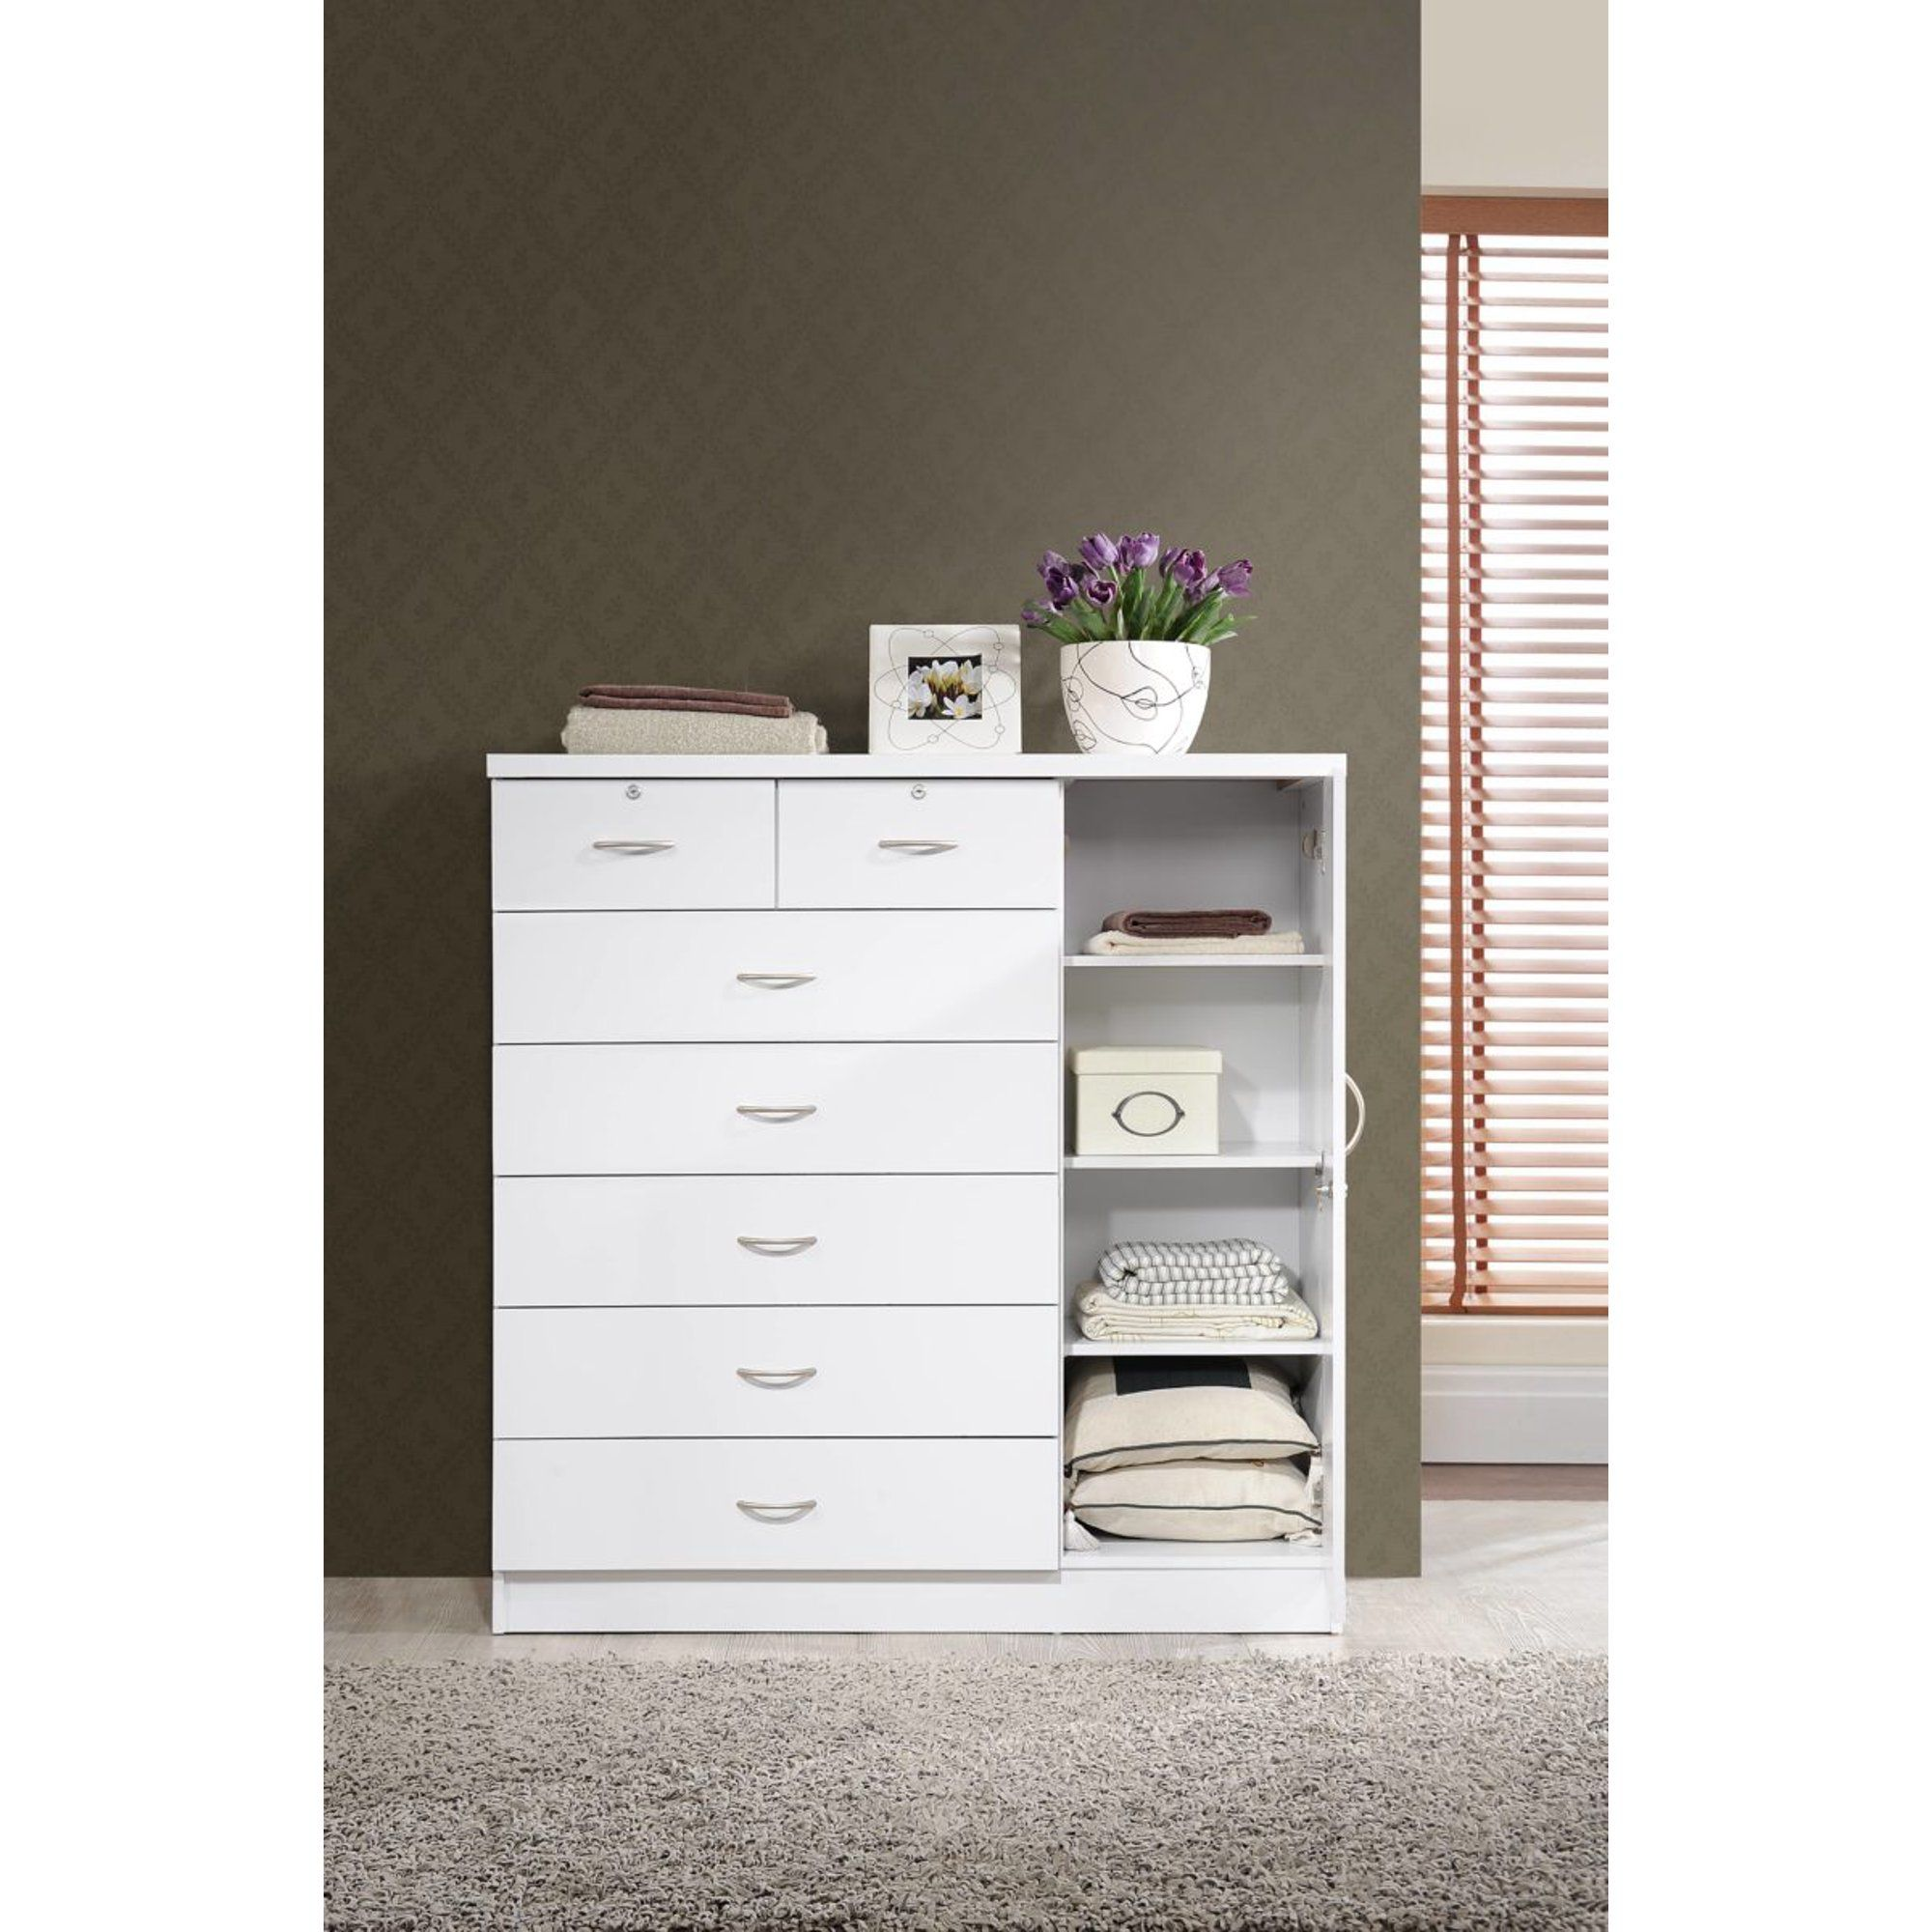 Hodedah 7 Drawer Dresser With Side Cabinet Equipped With 3 Shelves White Walmart Com In 2021 7 Drawer Dresser Dresser Drawers Side Cabinet [ 2000 x 2000 Pixel ]